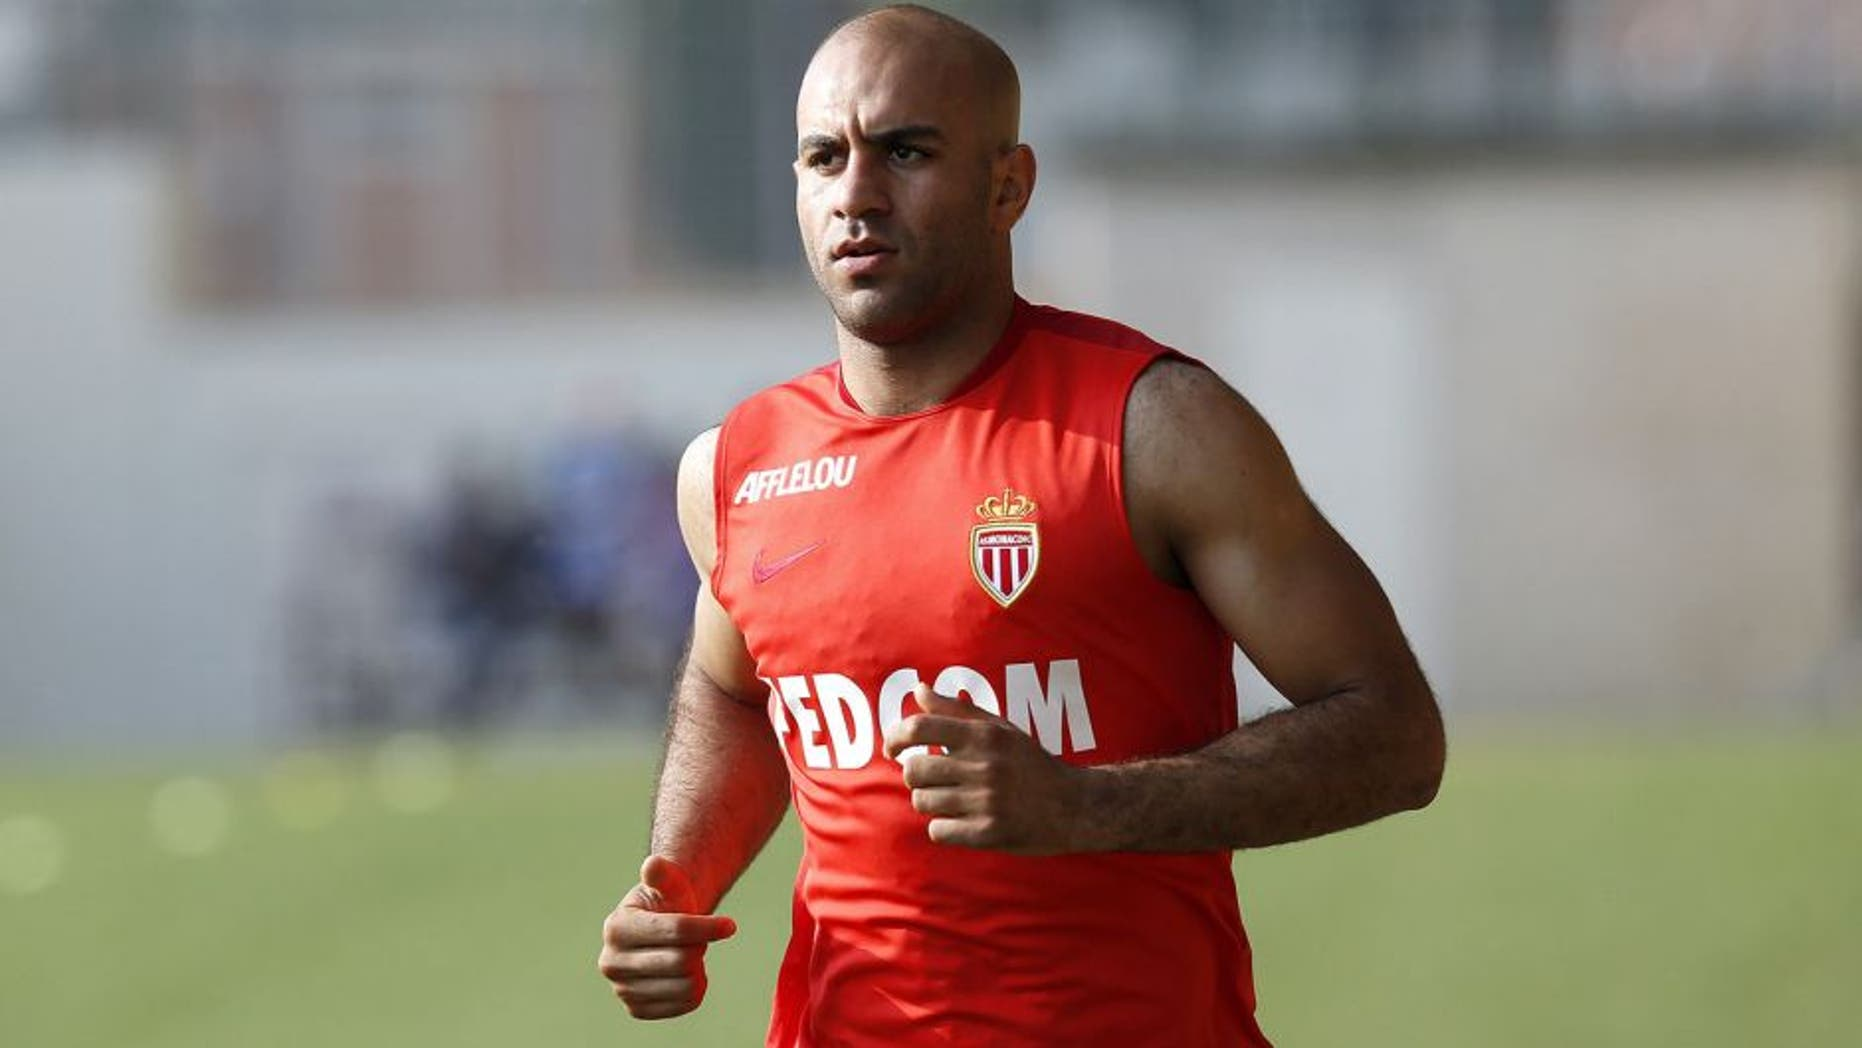 Monaco's Tunisian defender Aymen Abdennour runs during the first training session of 2015-2016 season on June 29, 2015 in La Turbie, southeastern France. AFP PHOTO / VALERY HACHE (Photo credit should read VALERY HACHE/AFP/Getty Images)